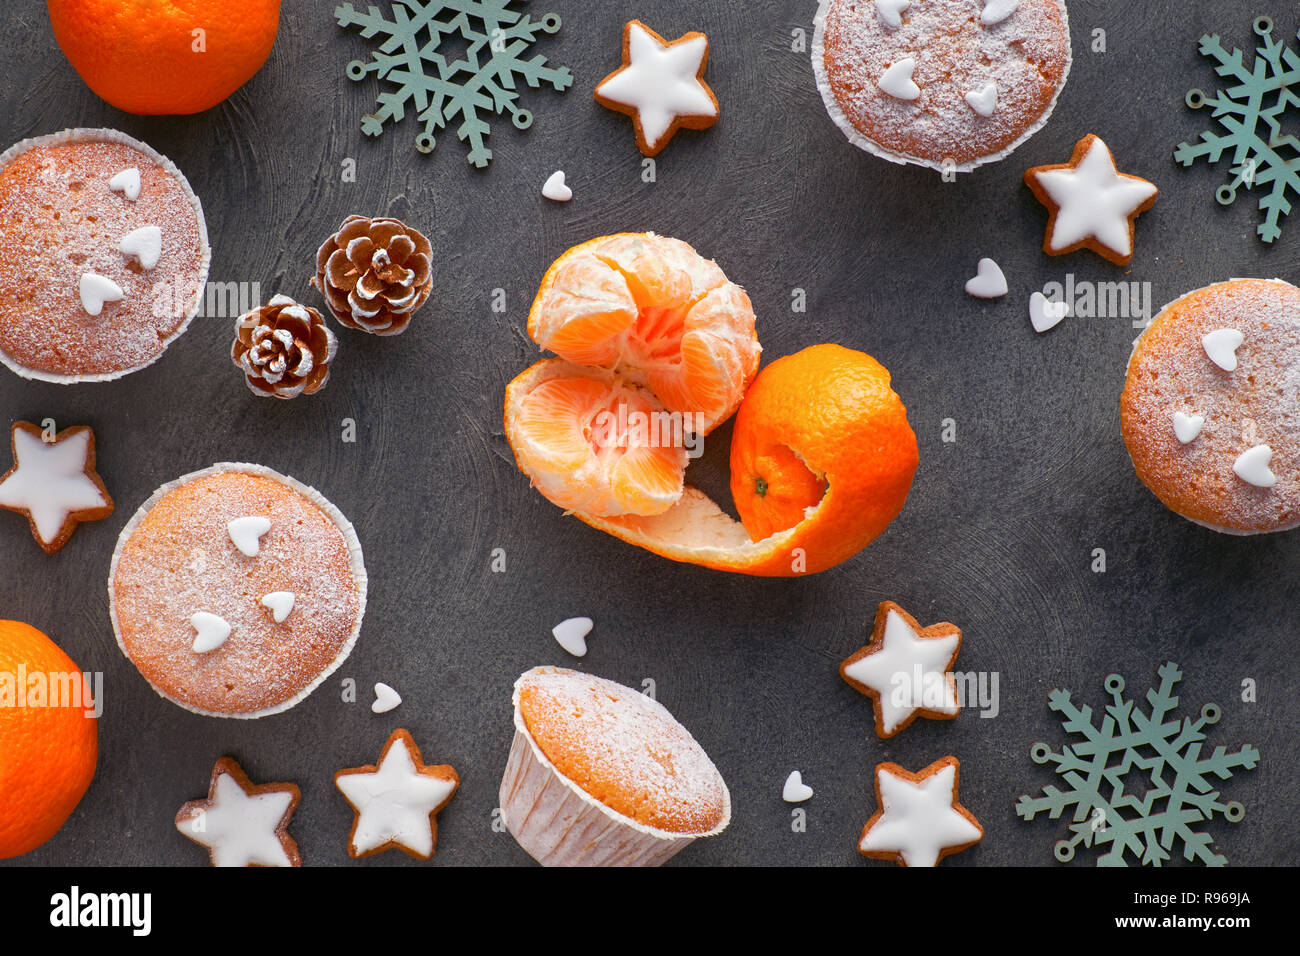 Top view of the table with satsumas, sugar-sprinkled muffins and Christmas star cookies on dark textured background - Stock Image